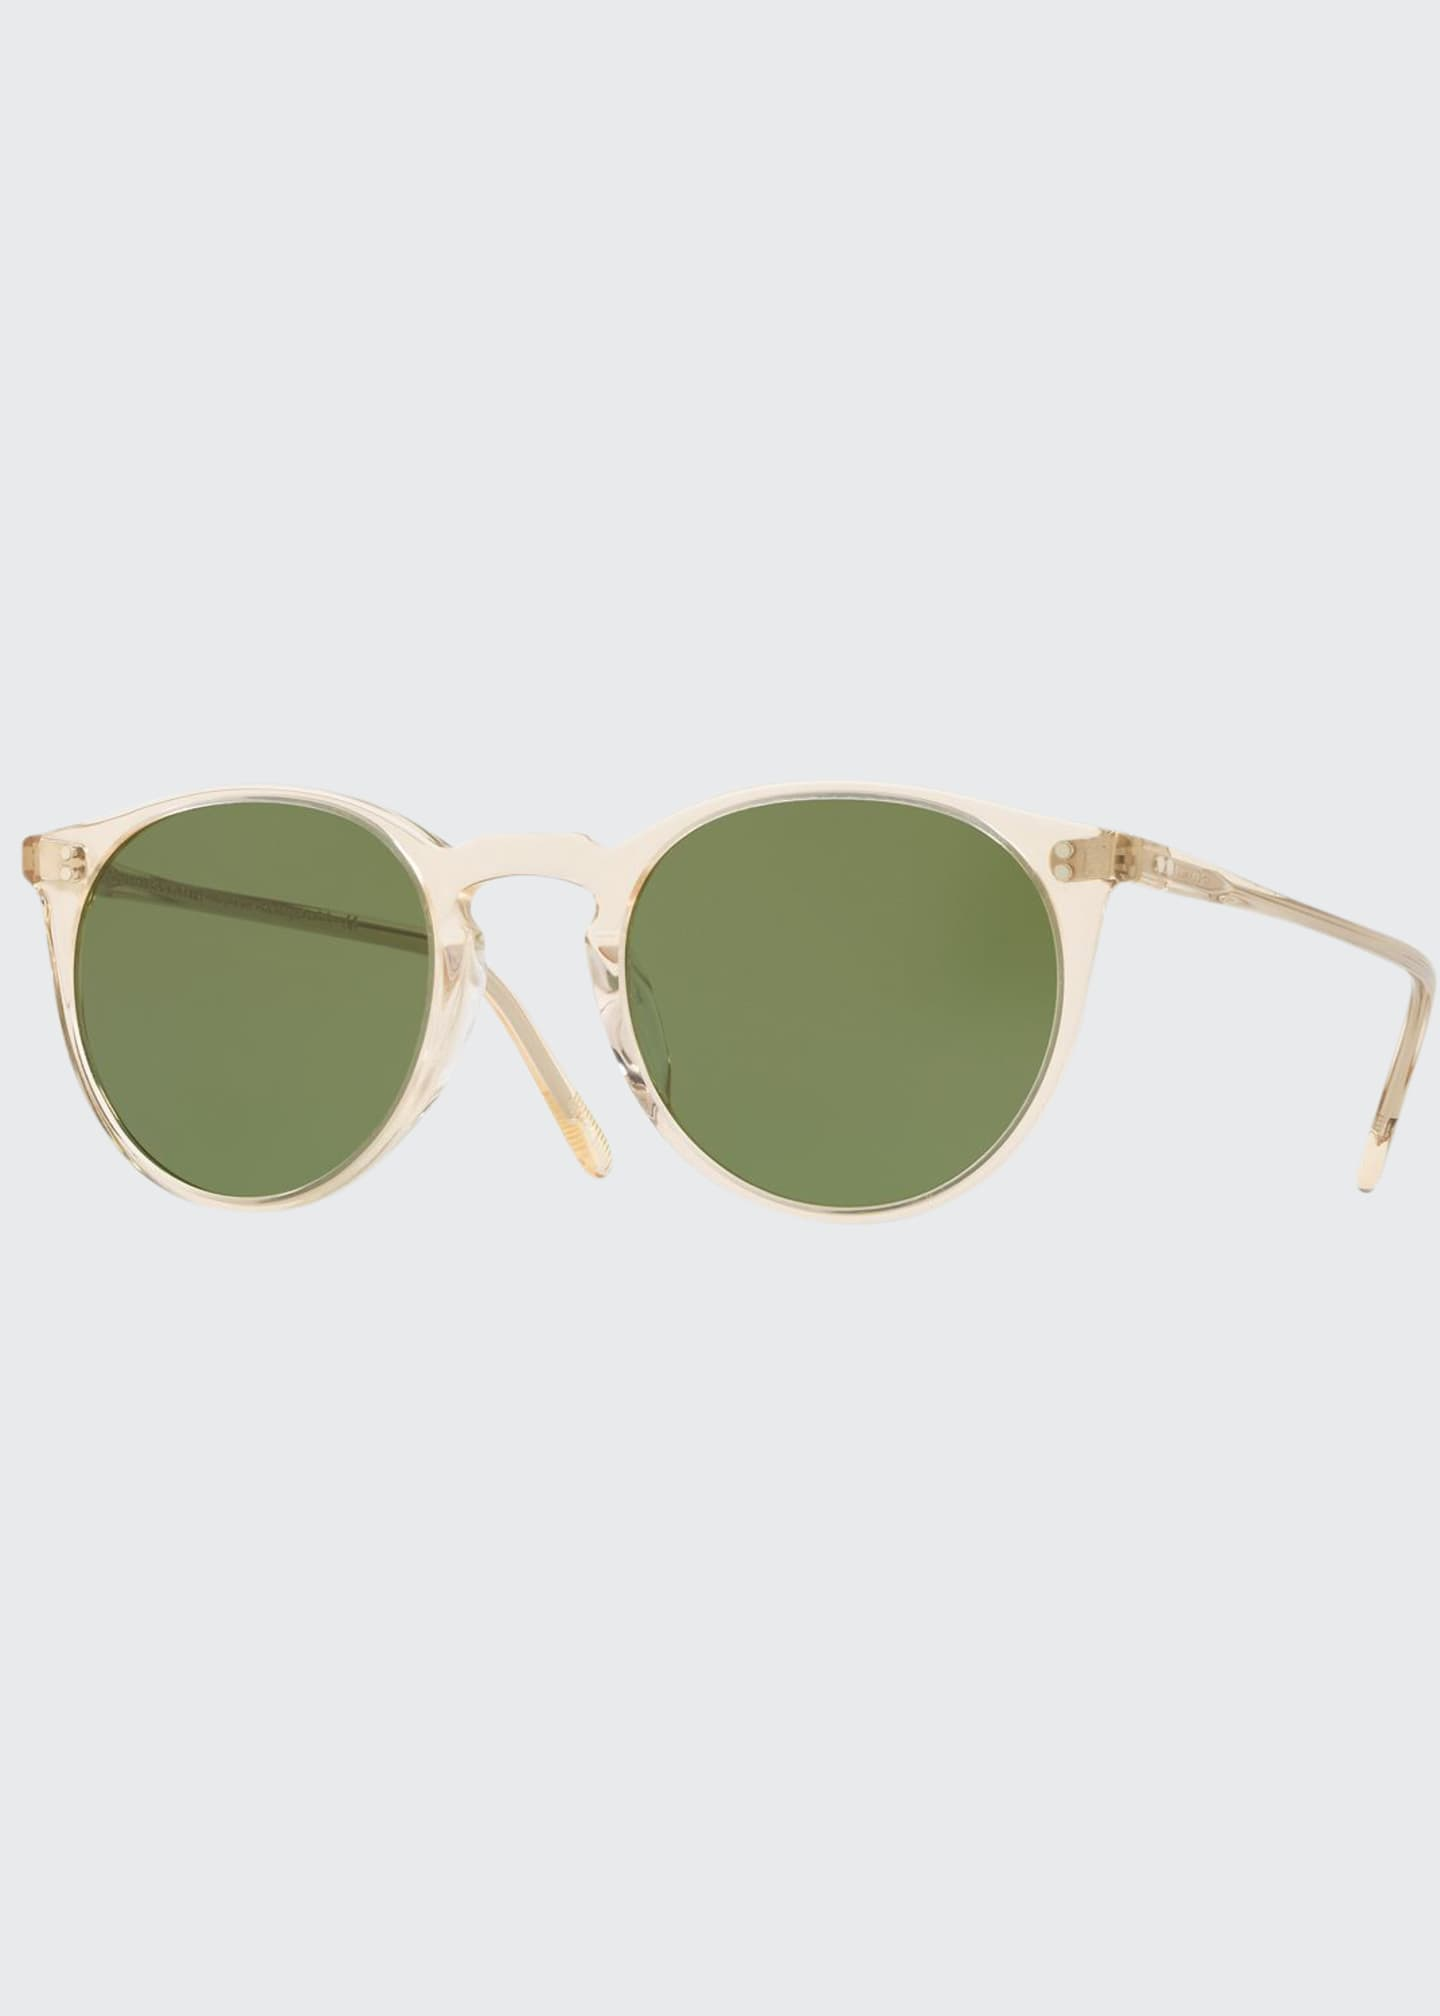 Image 1 of 2: Men's O'Malley Peaked Round Sunglasses with Mineral Glass Lenses - Buff Green